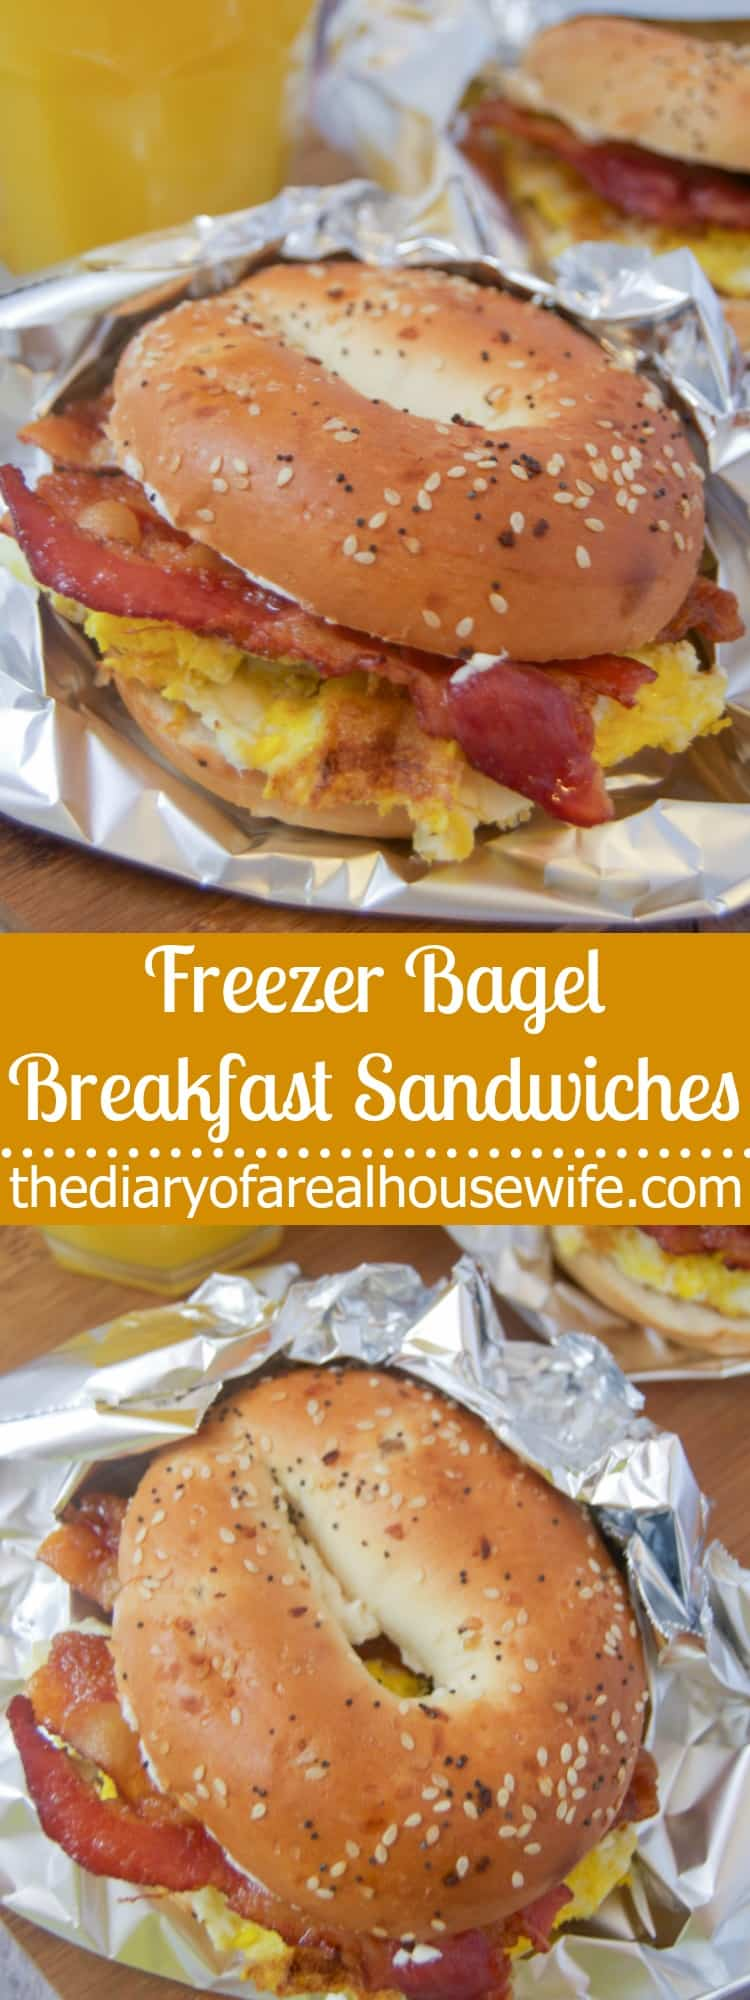 Freezer Bagel Breakfast Sandwiches • The Diary of a Real ...